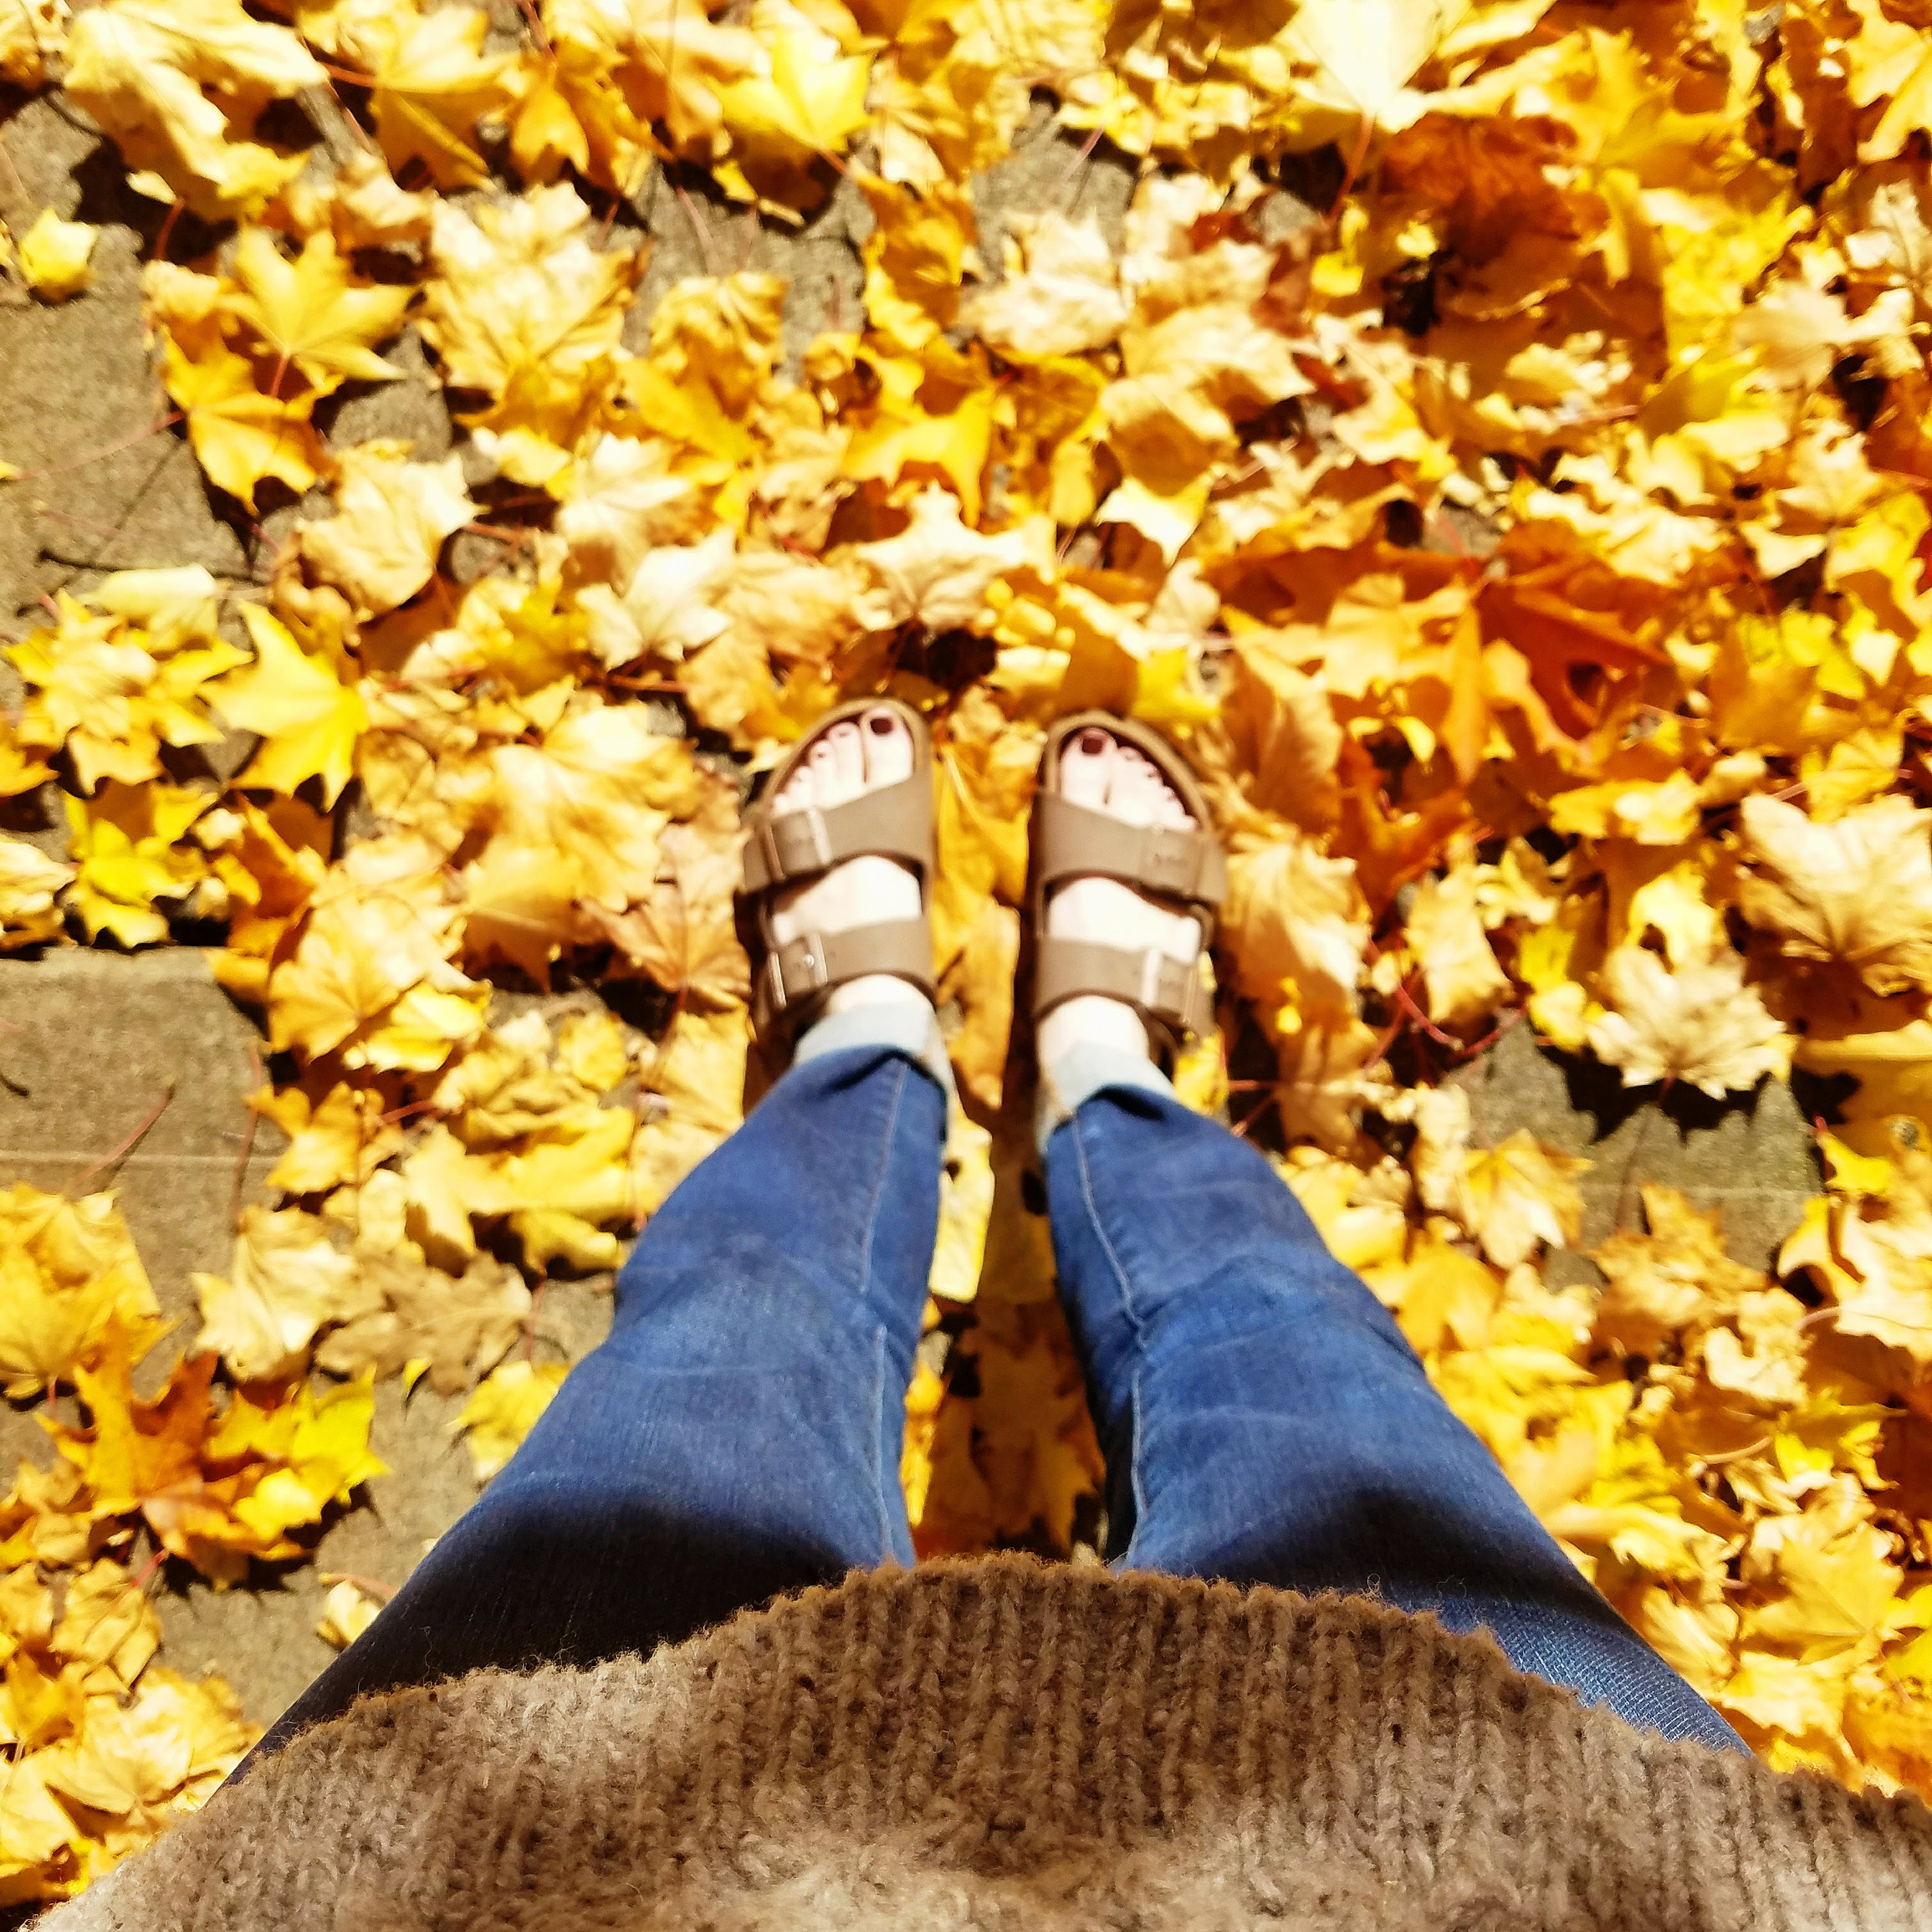 I would go out of my way to walk through these leaves!